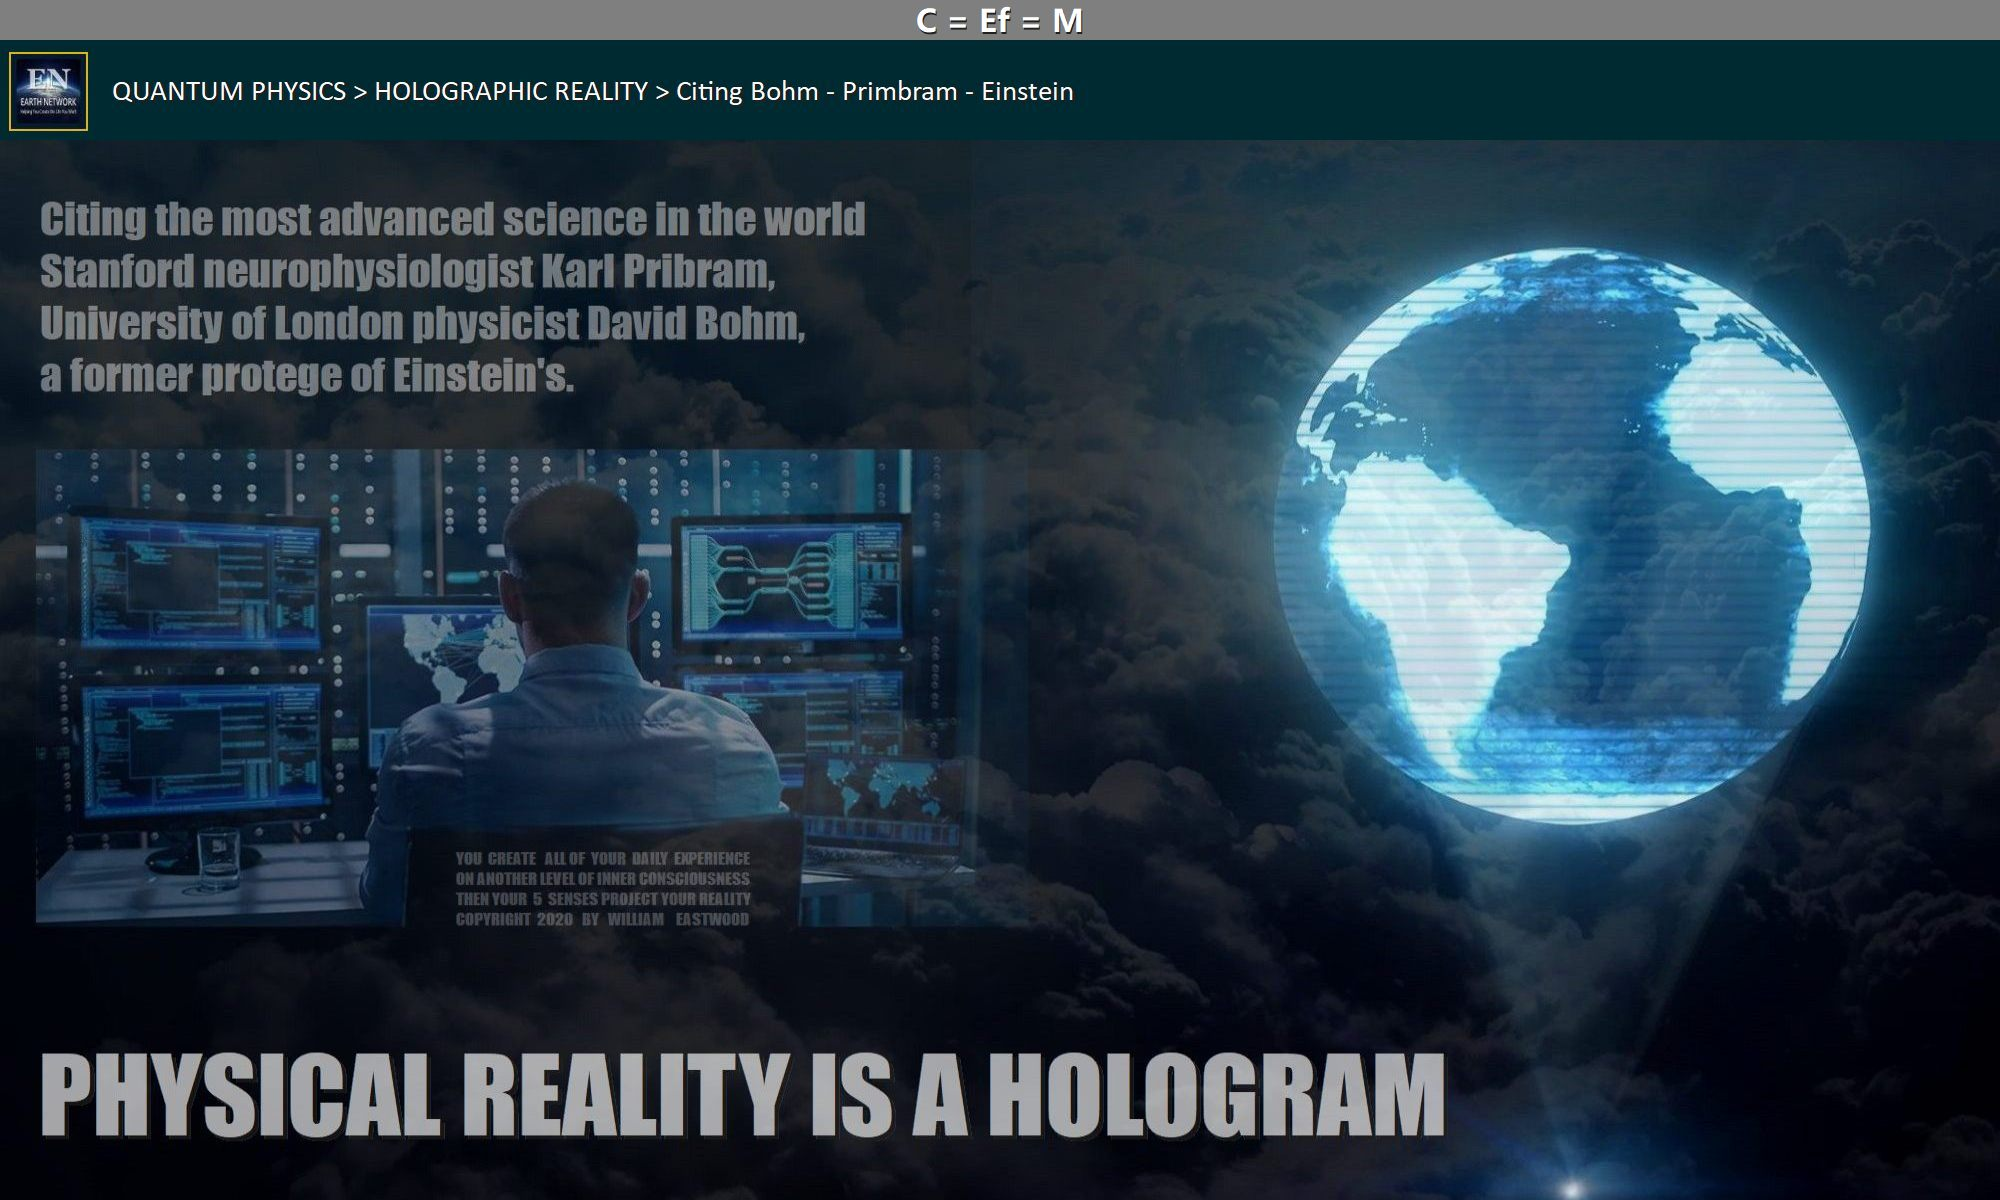 man-in-clouds-at-computer-projecting-hologram-of-earth